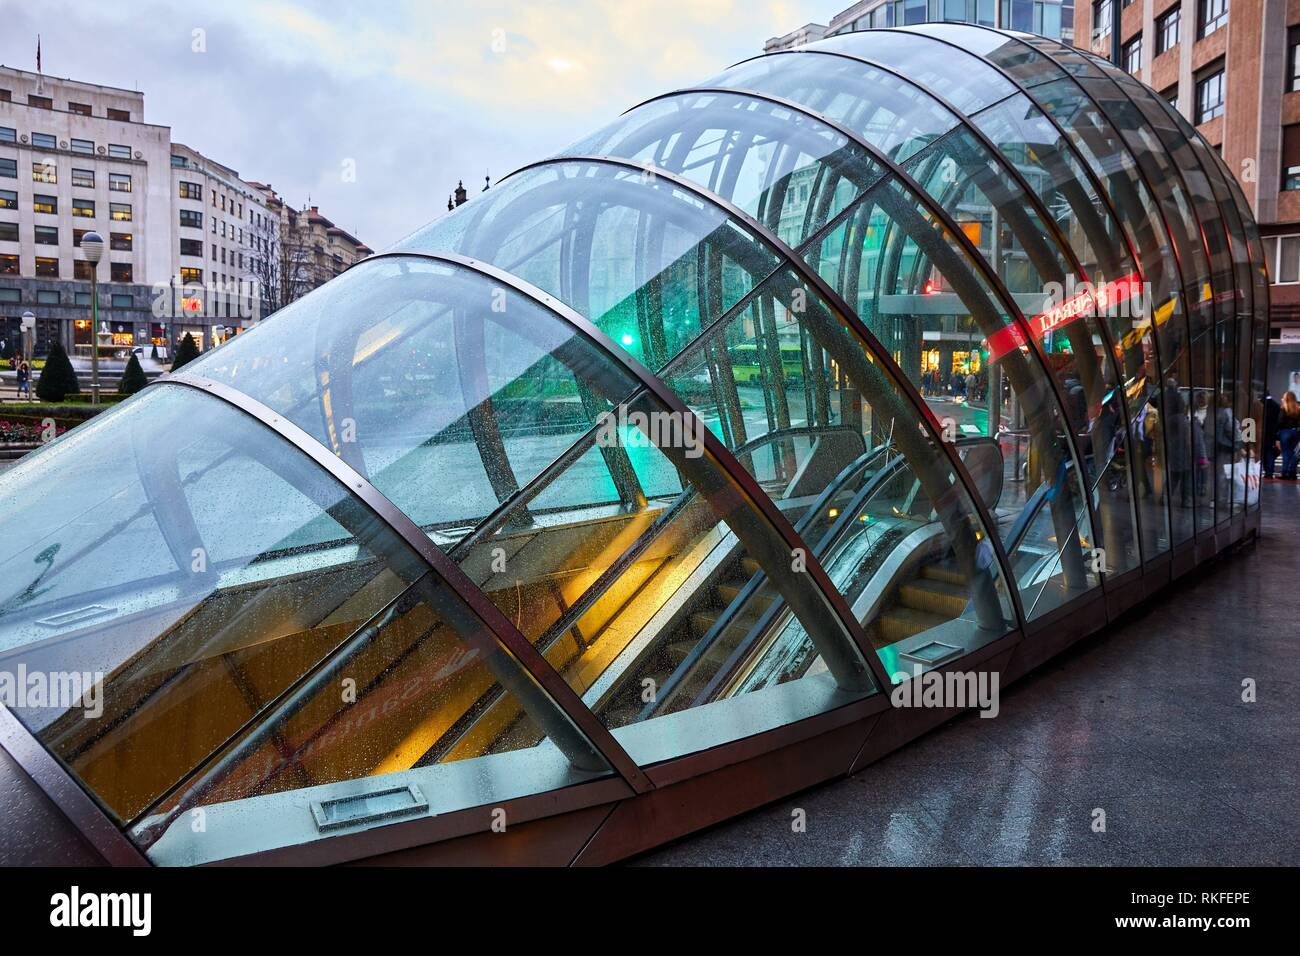 Entry of subway station in Bilbao projected by Norman Foster, Underground Tube, Metro Bilbao, Moyua Plaza, Bilbao, Bizkaia, Basque Country, Spain, - Stock Image